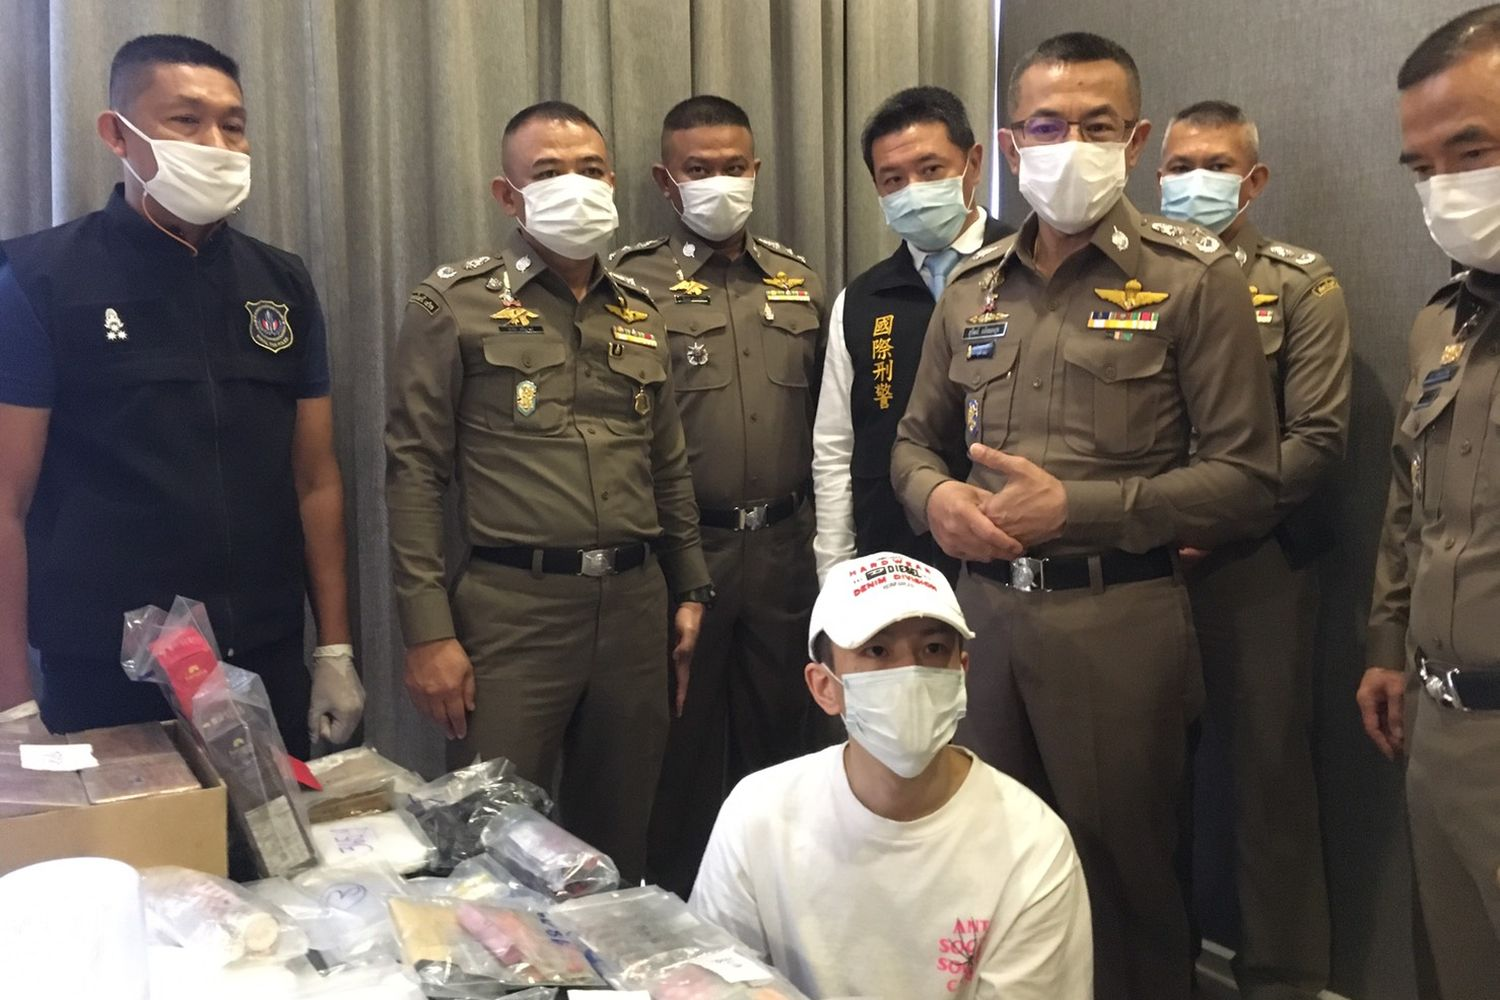 Police arrest Chou Yi Shen (seated) at a condominium in Ratchathewi district in Bangkok on Monday. (Royal Thai Police photo)